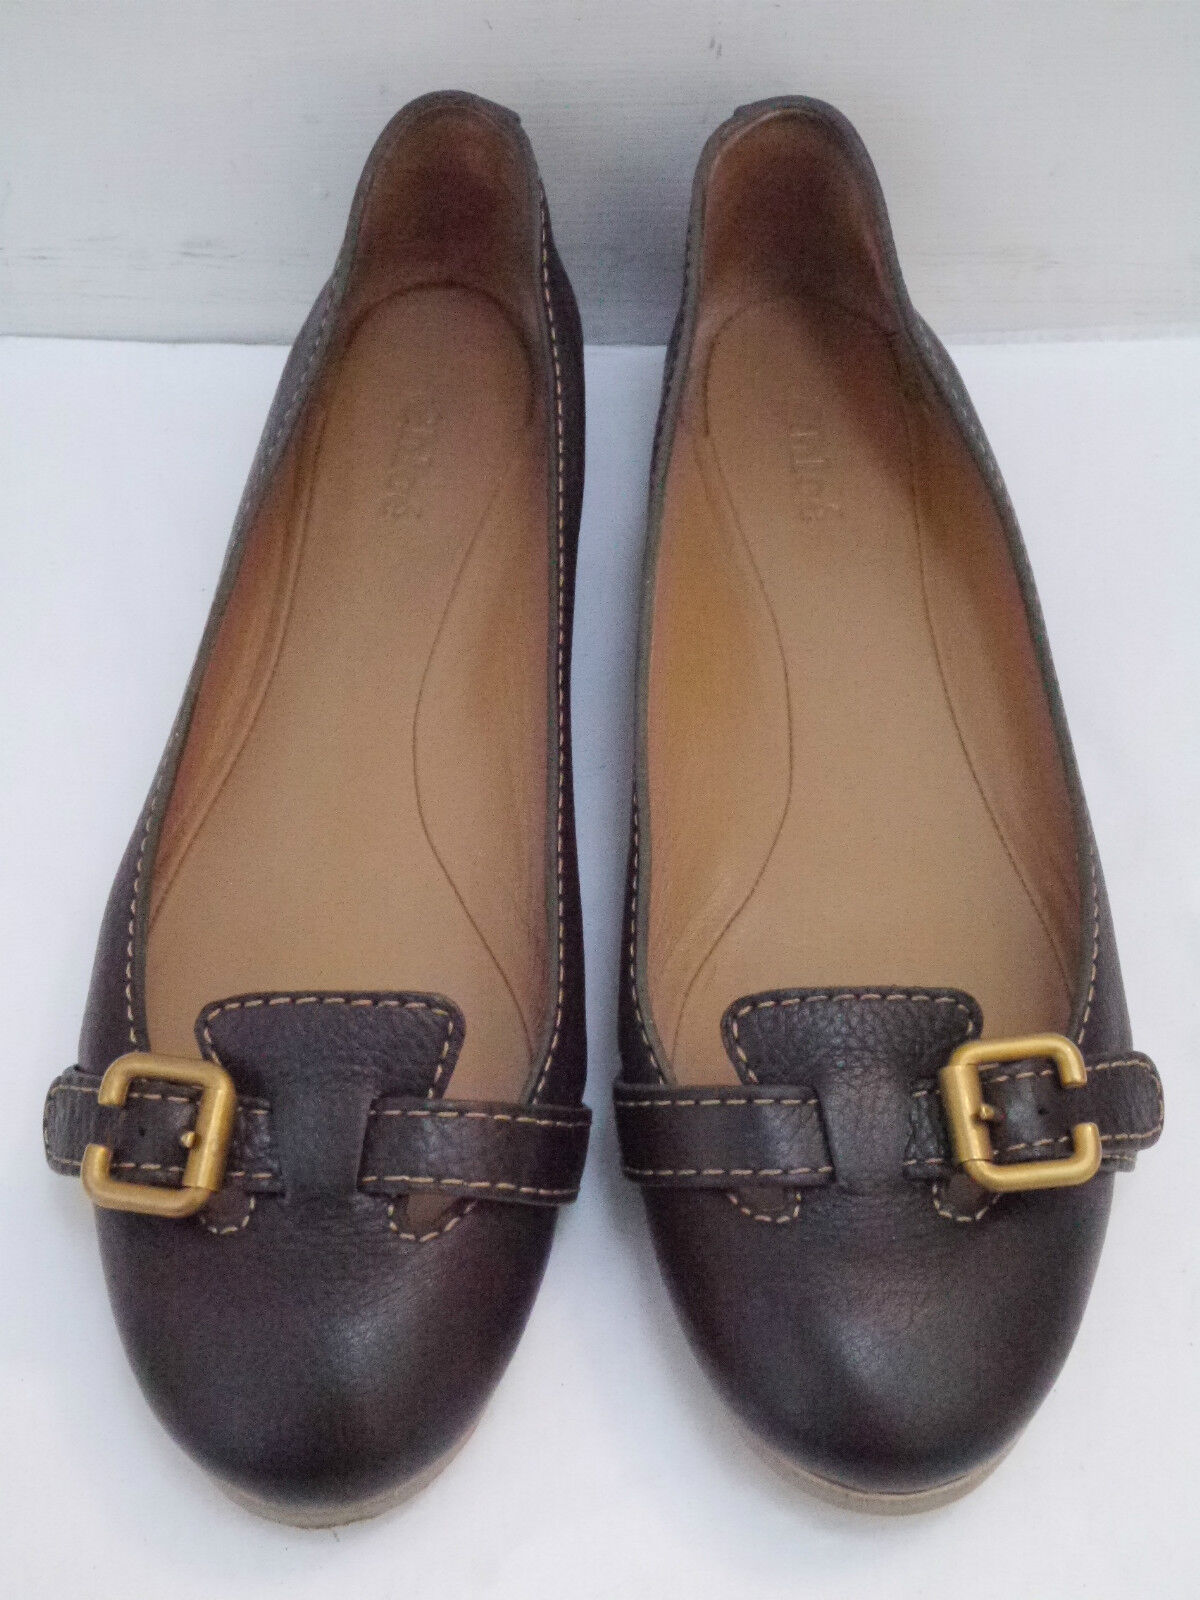 CHLOE  465 Prince dark brown calf leather ballet flats flats flats Italian size 39 WORN ONCE 588a49